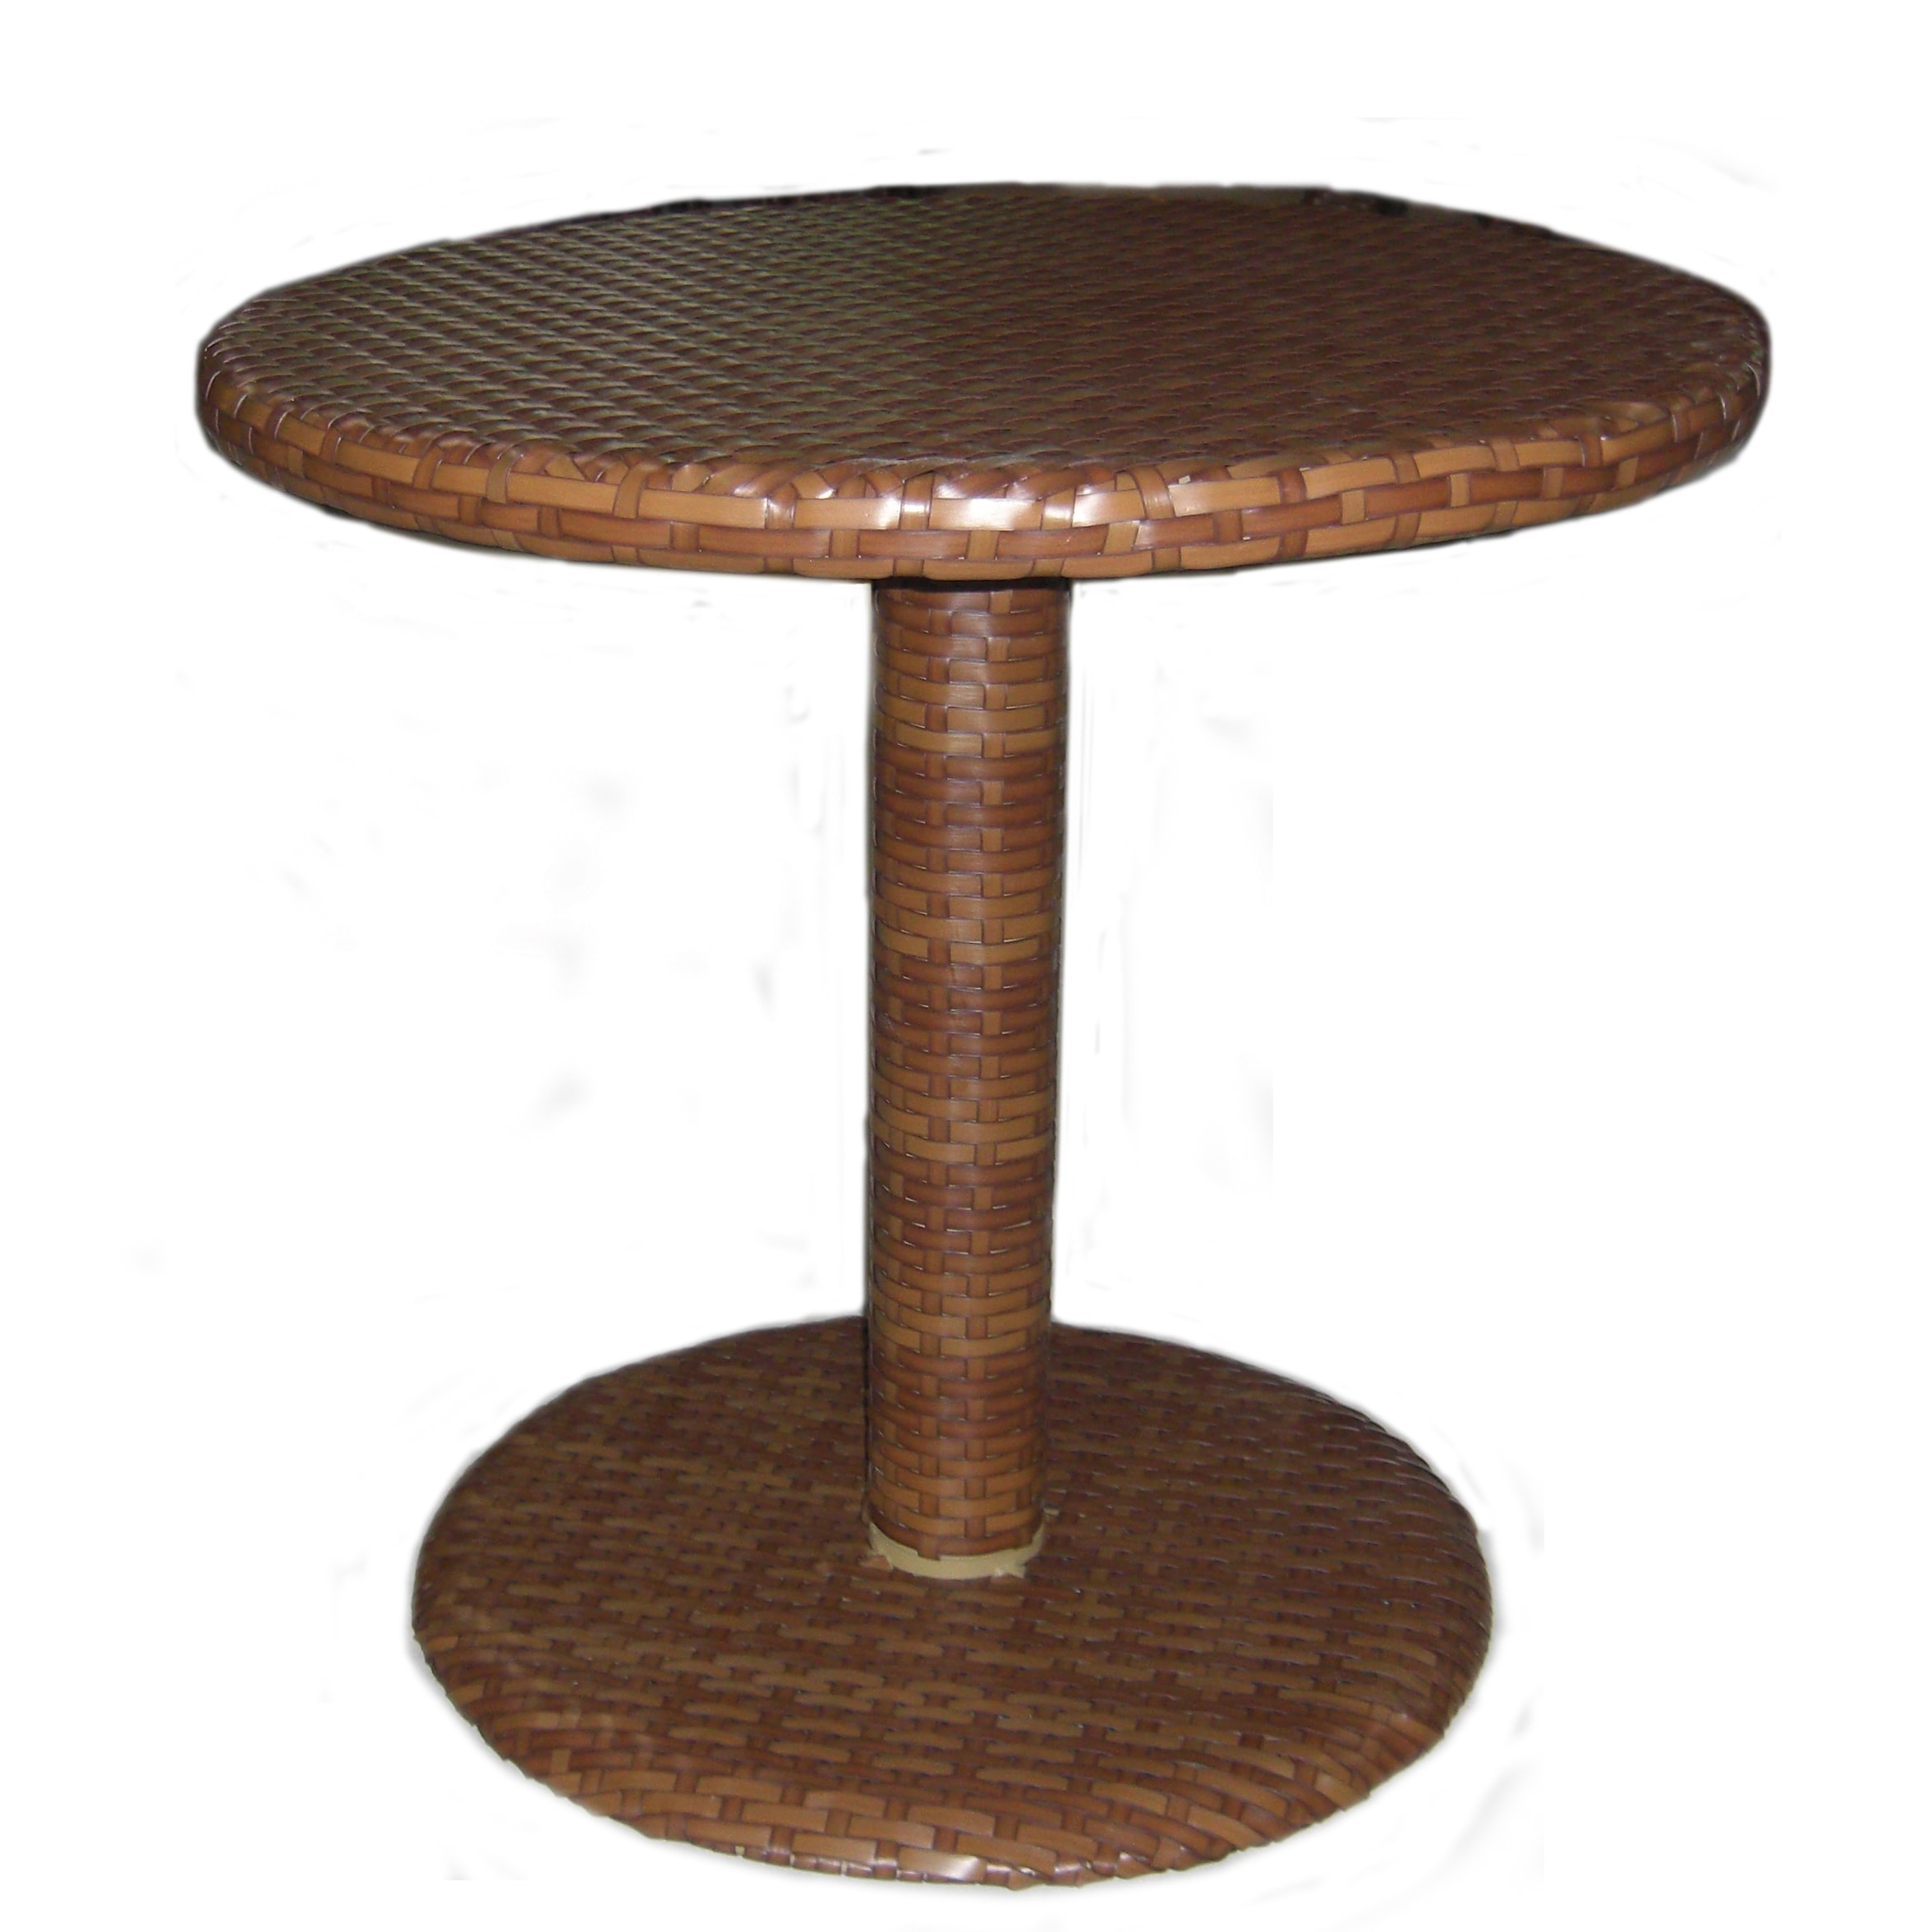 Panama jack st barths woven 30 in bistro dining table brown pine with viro fiber walmart com